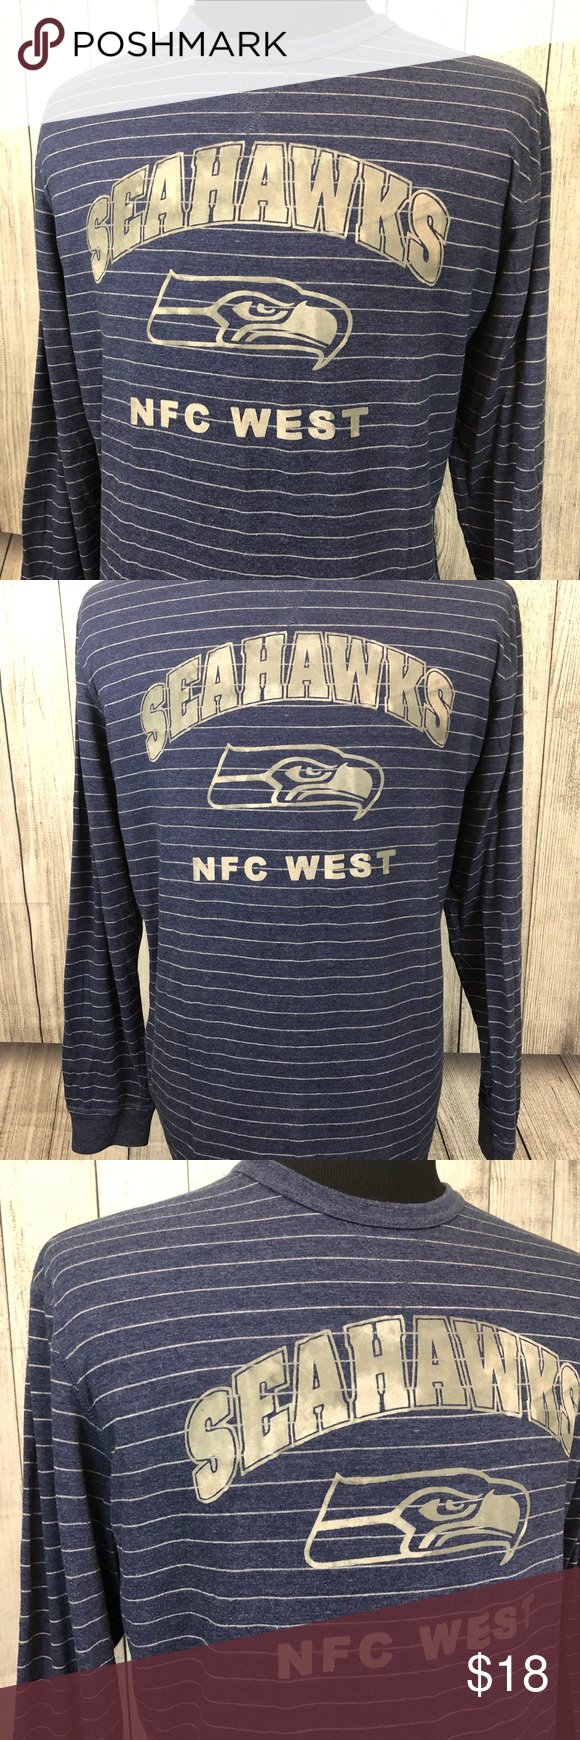 12cf3238 NFL SEATTLE SEAHAWKS XL Blue Striped T-Shirt Inventory #: C496 -NFL ...